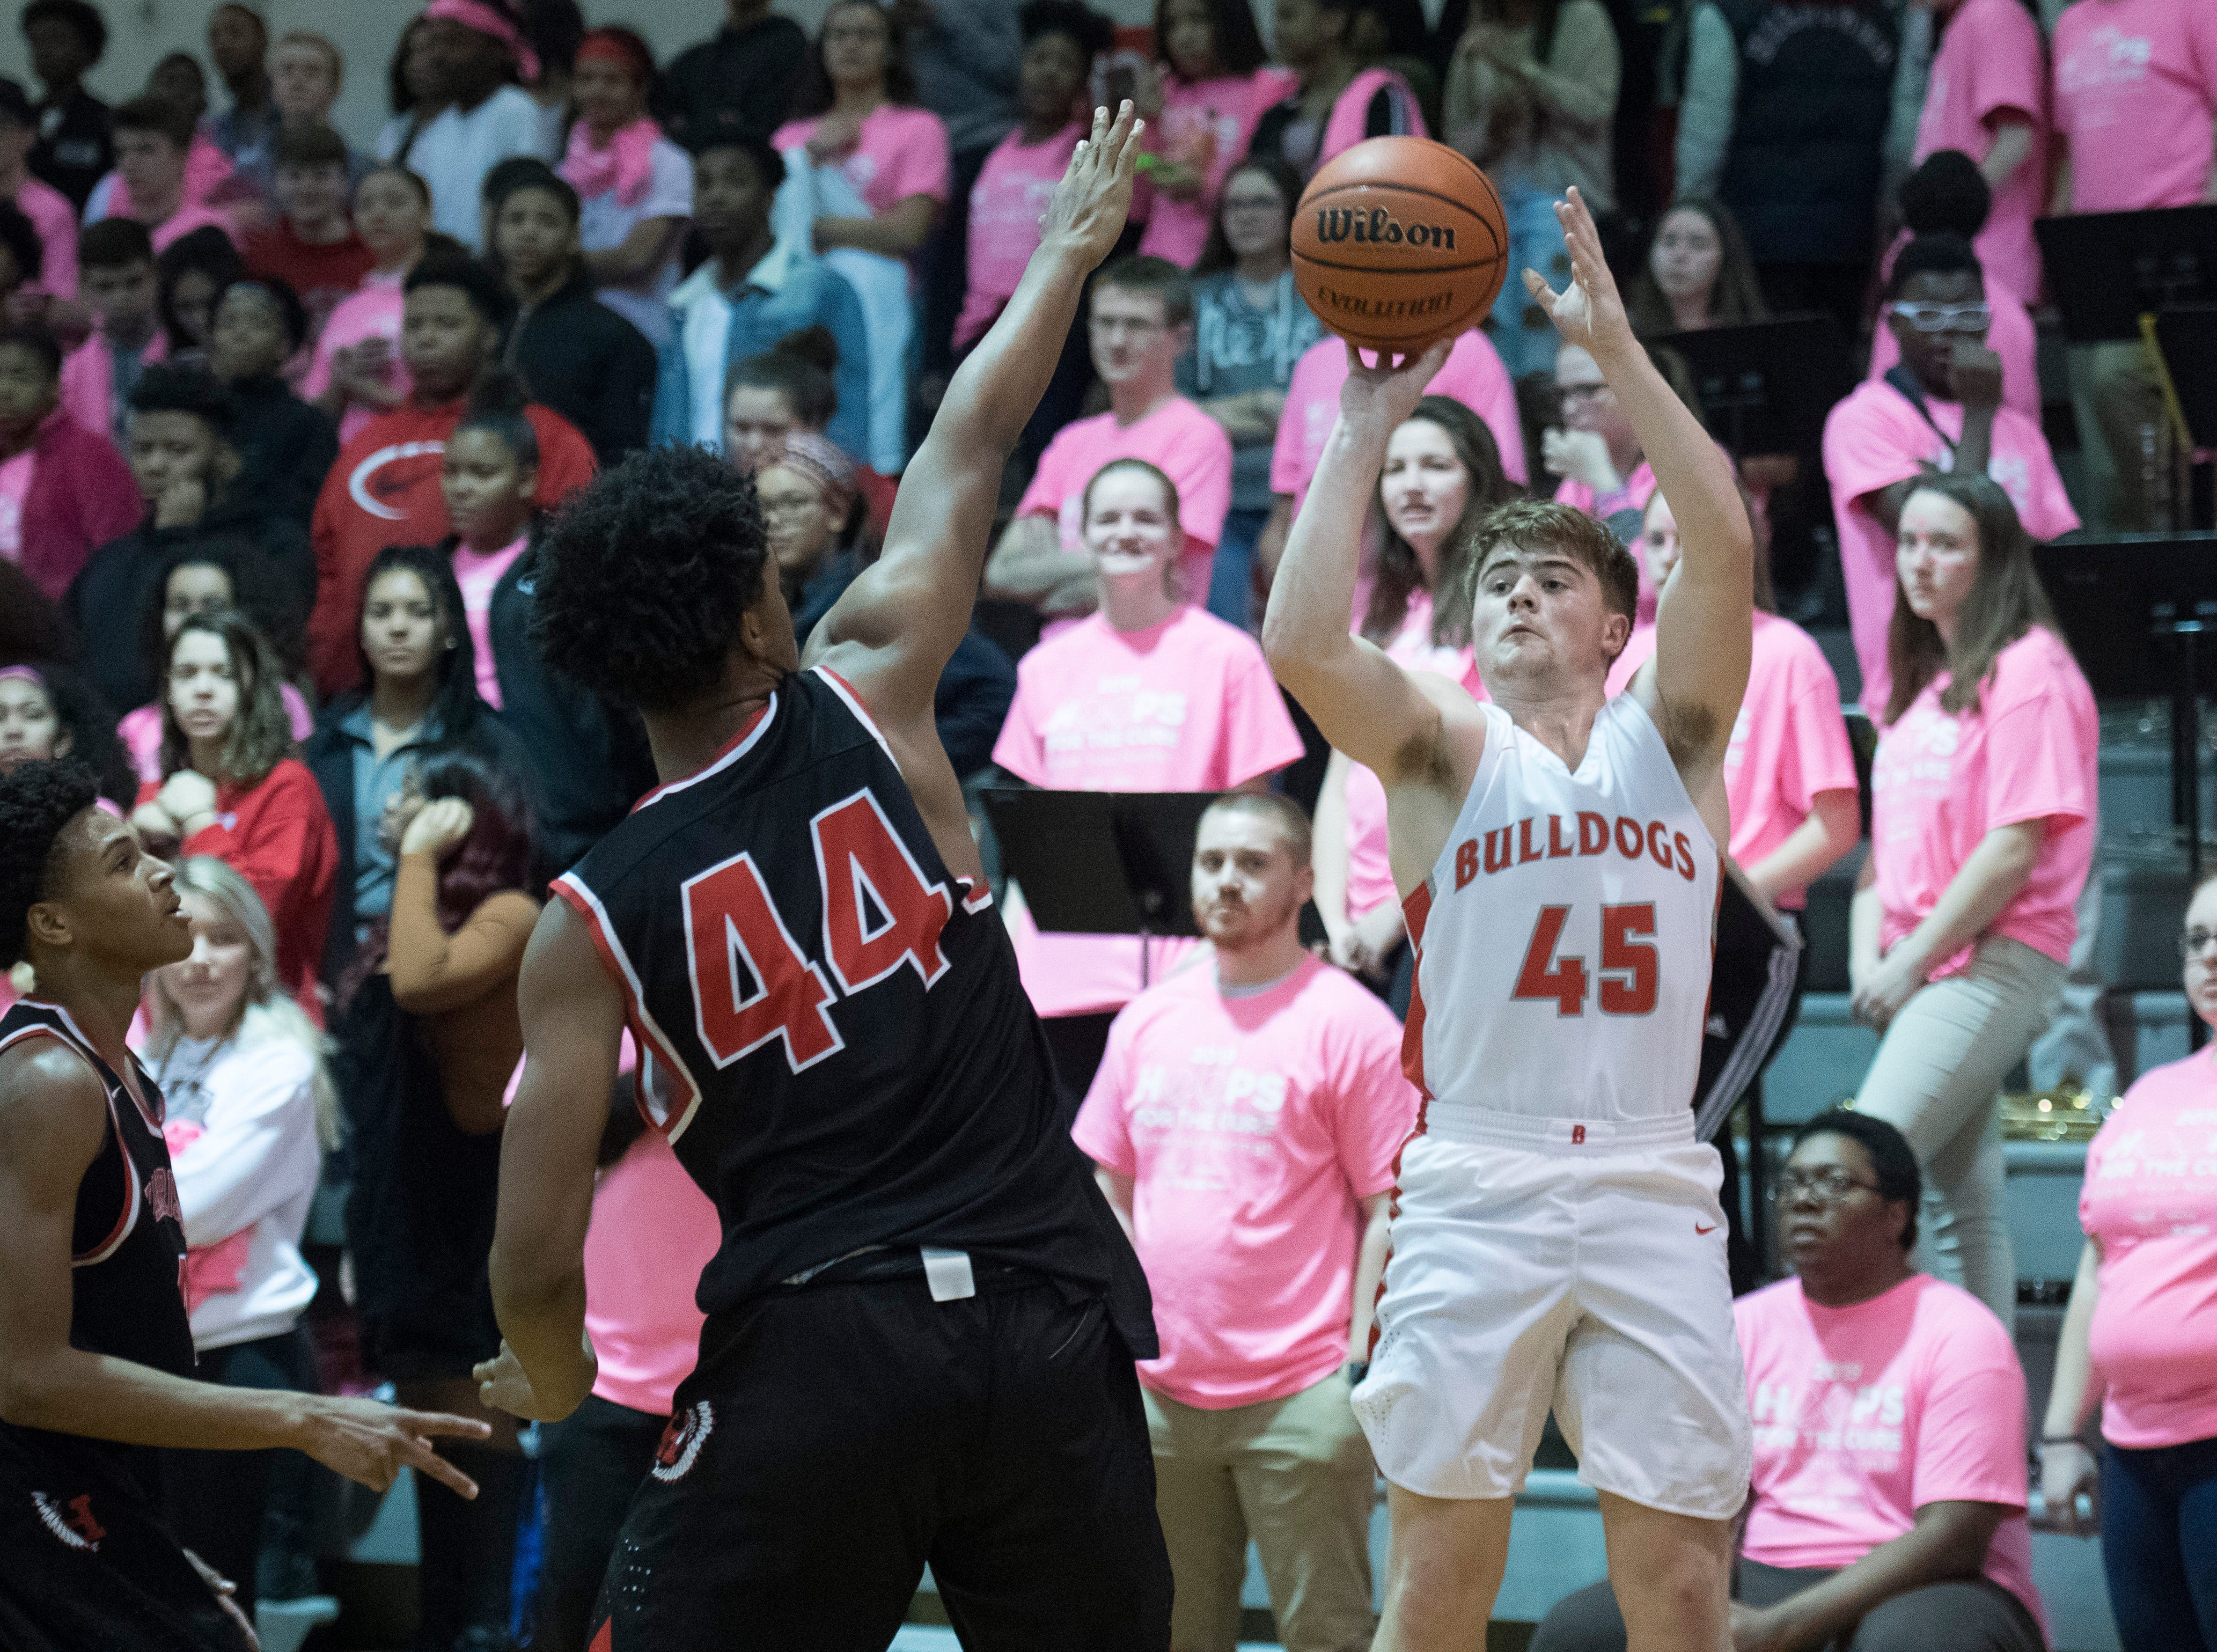 Bosse's Kolten Sanford (45) takes a 3-point shot during the Harrison vs Bosse game at Bosse High School Tuesday, Feb. 12, 2019. The Bosse Bulldogs won 74-56.